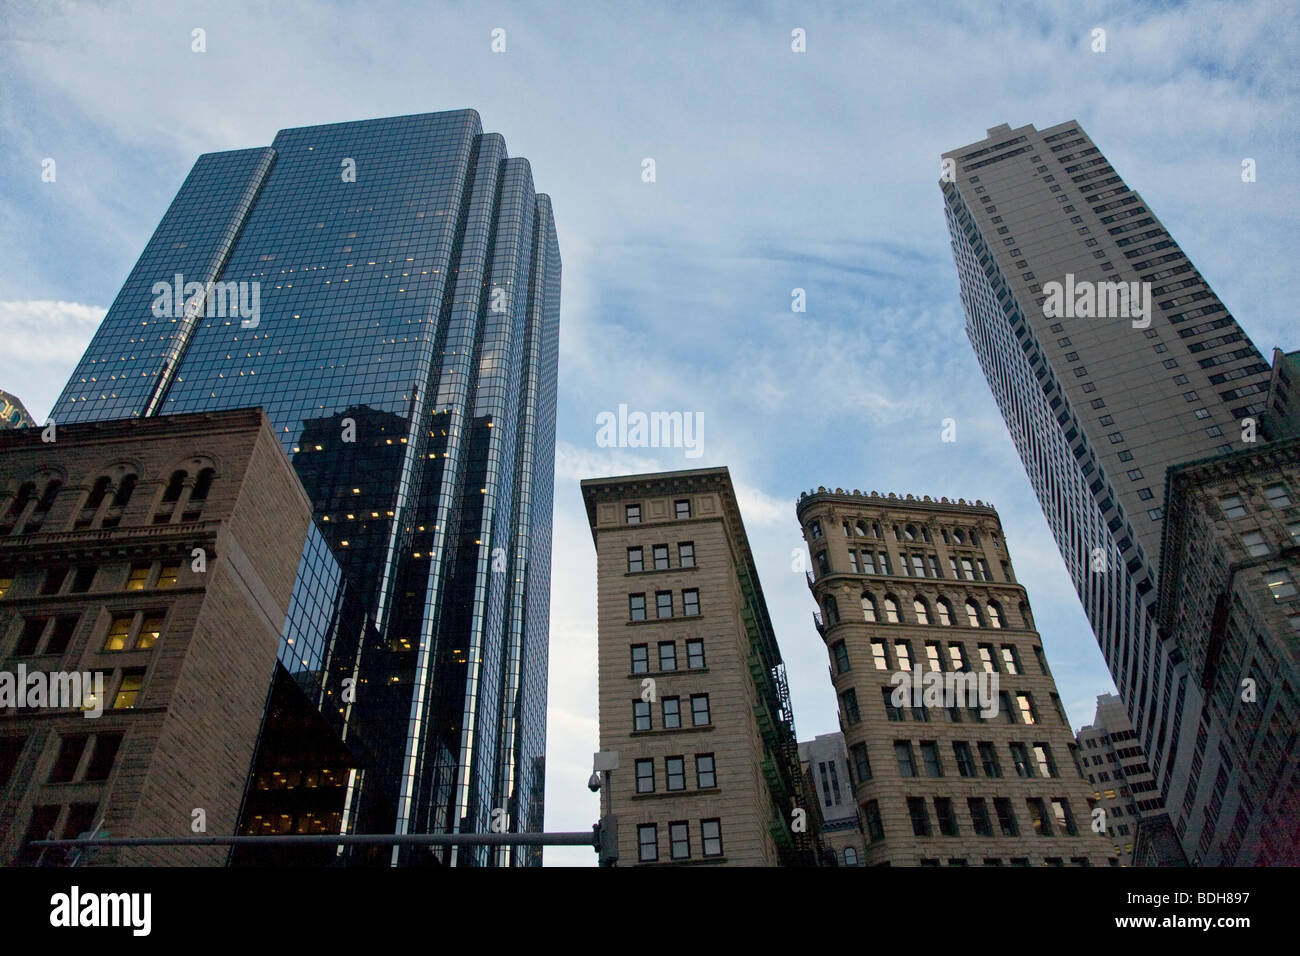 Old Colonial BRICK BUILDINGS are dwarfed by modern SKY SCRAPERS - BOSTON, MASSACHUSETTS - Stock Image